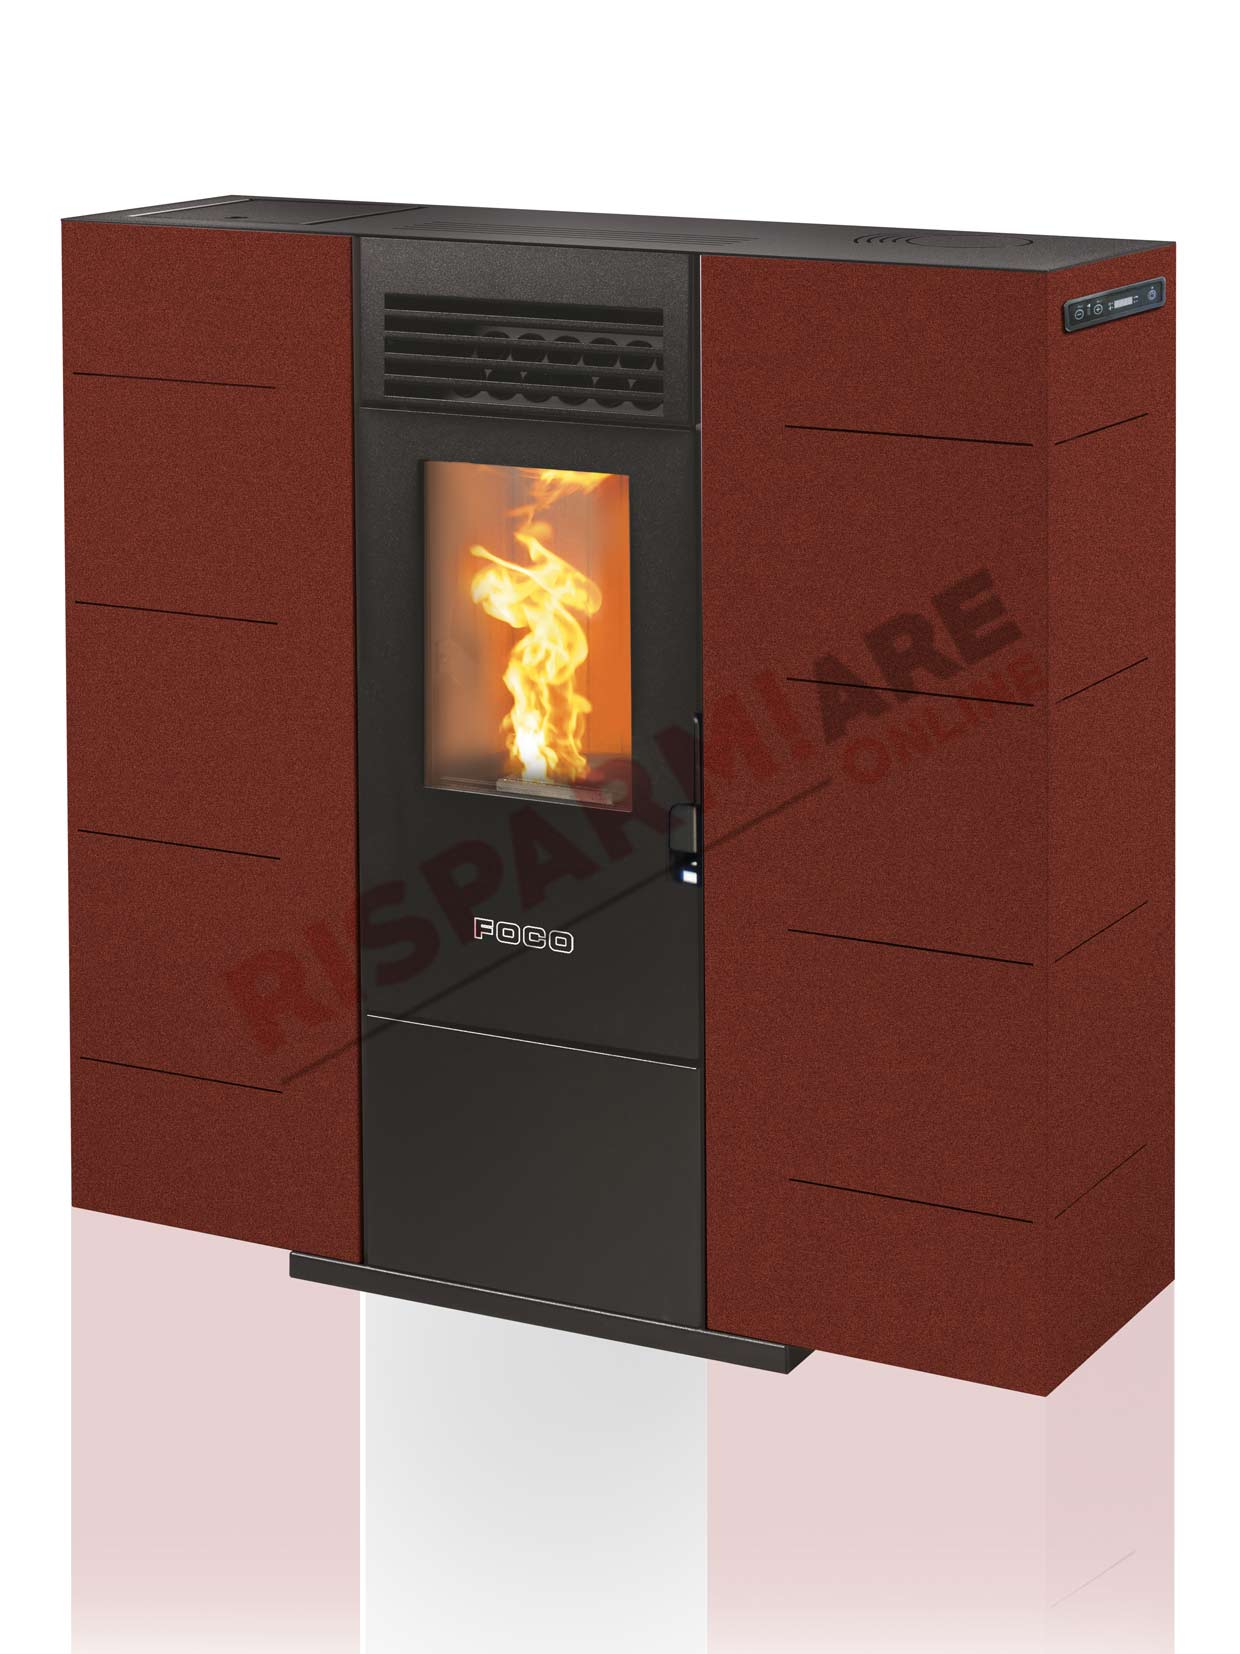 Foco stufa a pellet slim 6 6 53kw for Foco stufe pellet